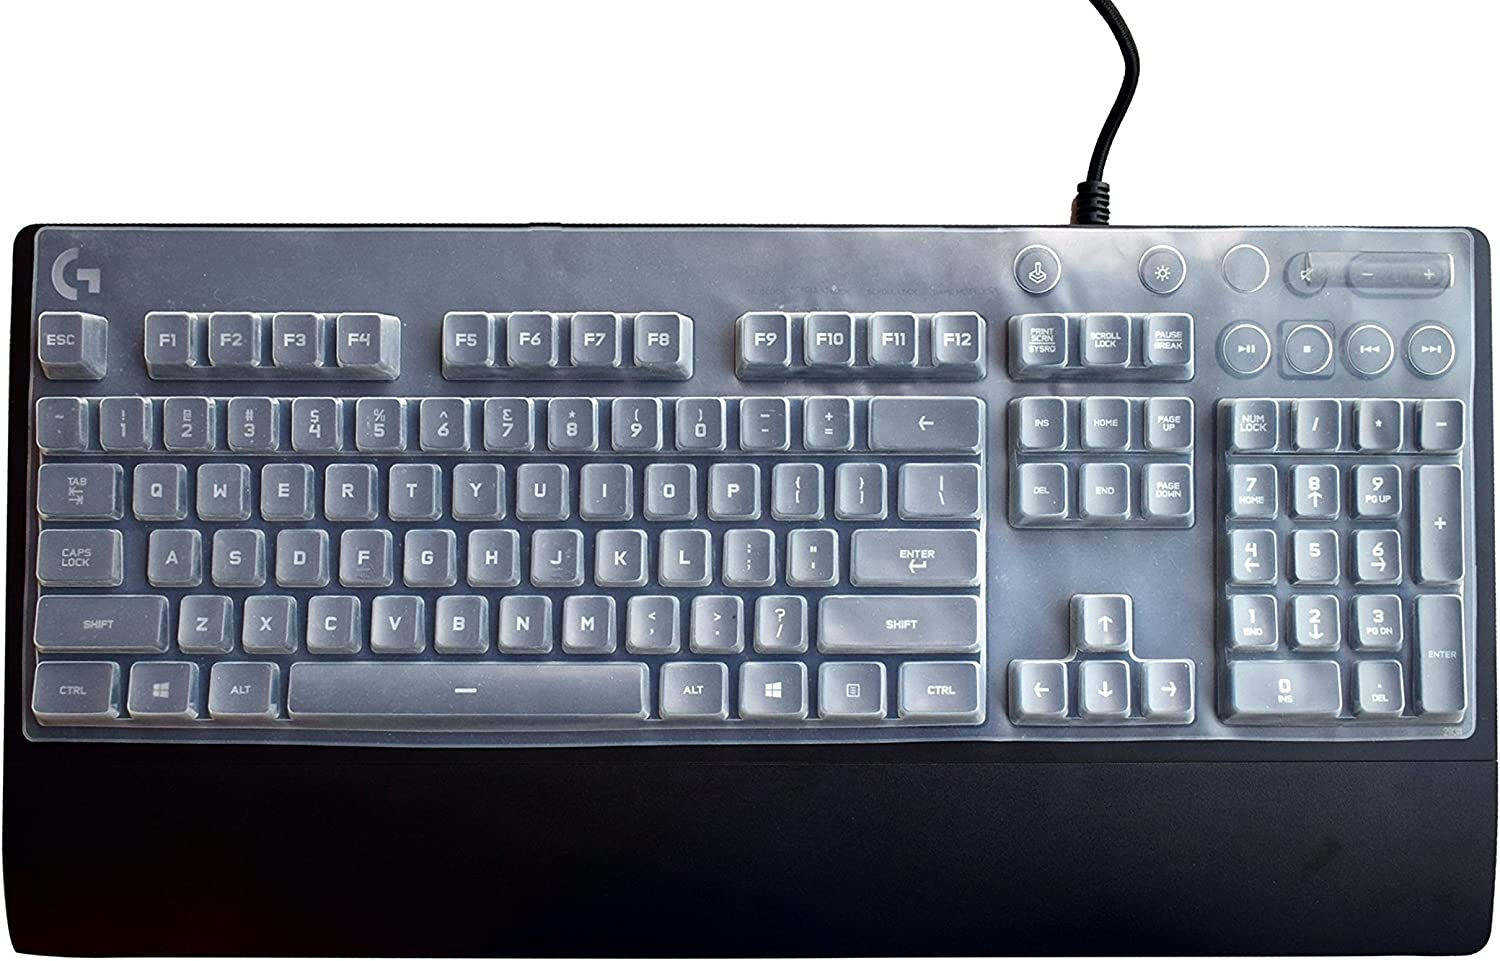 Ultra Thin Keyboard Cover for Logitech G810 Keyboard, Logitech G810 Orion Spectrum RGB Keyboard Protector- Clear